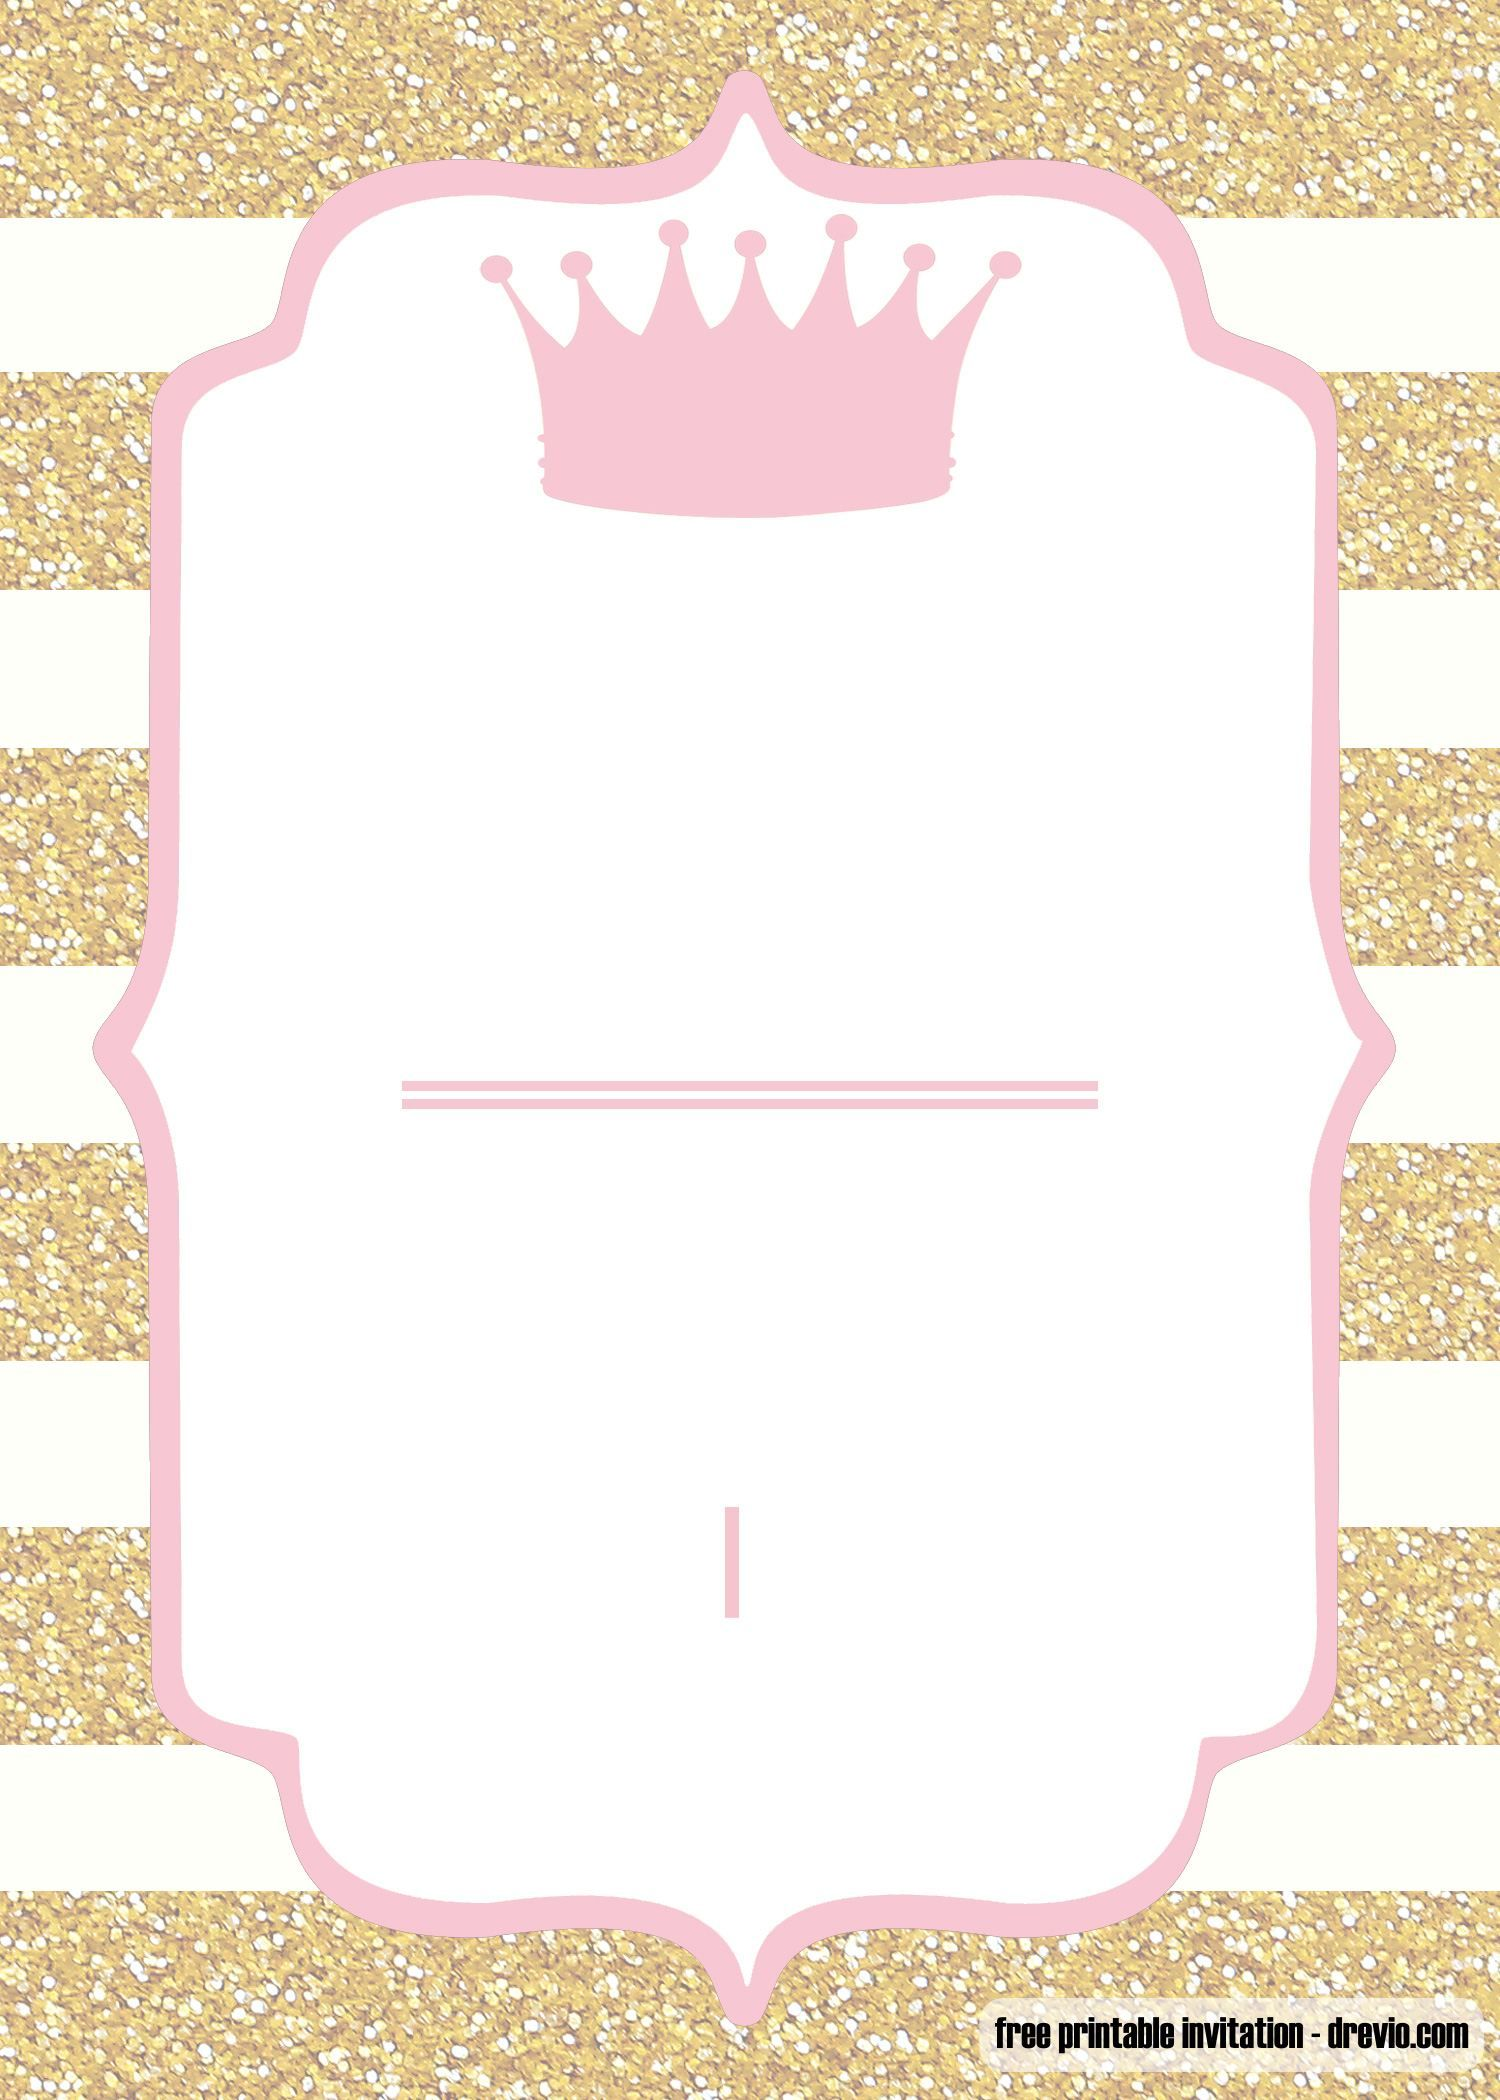 Free Printable Pink And Gold Baby Shower Invitation Templates Gold Baby Shower Invitations Princess Baby Shower Invitations Free Pink Gold Baby Shower Invitation